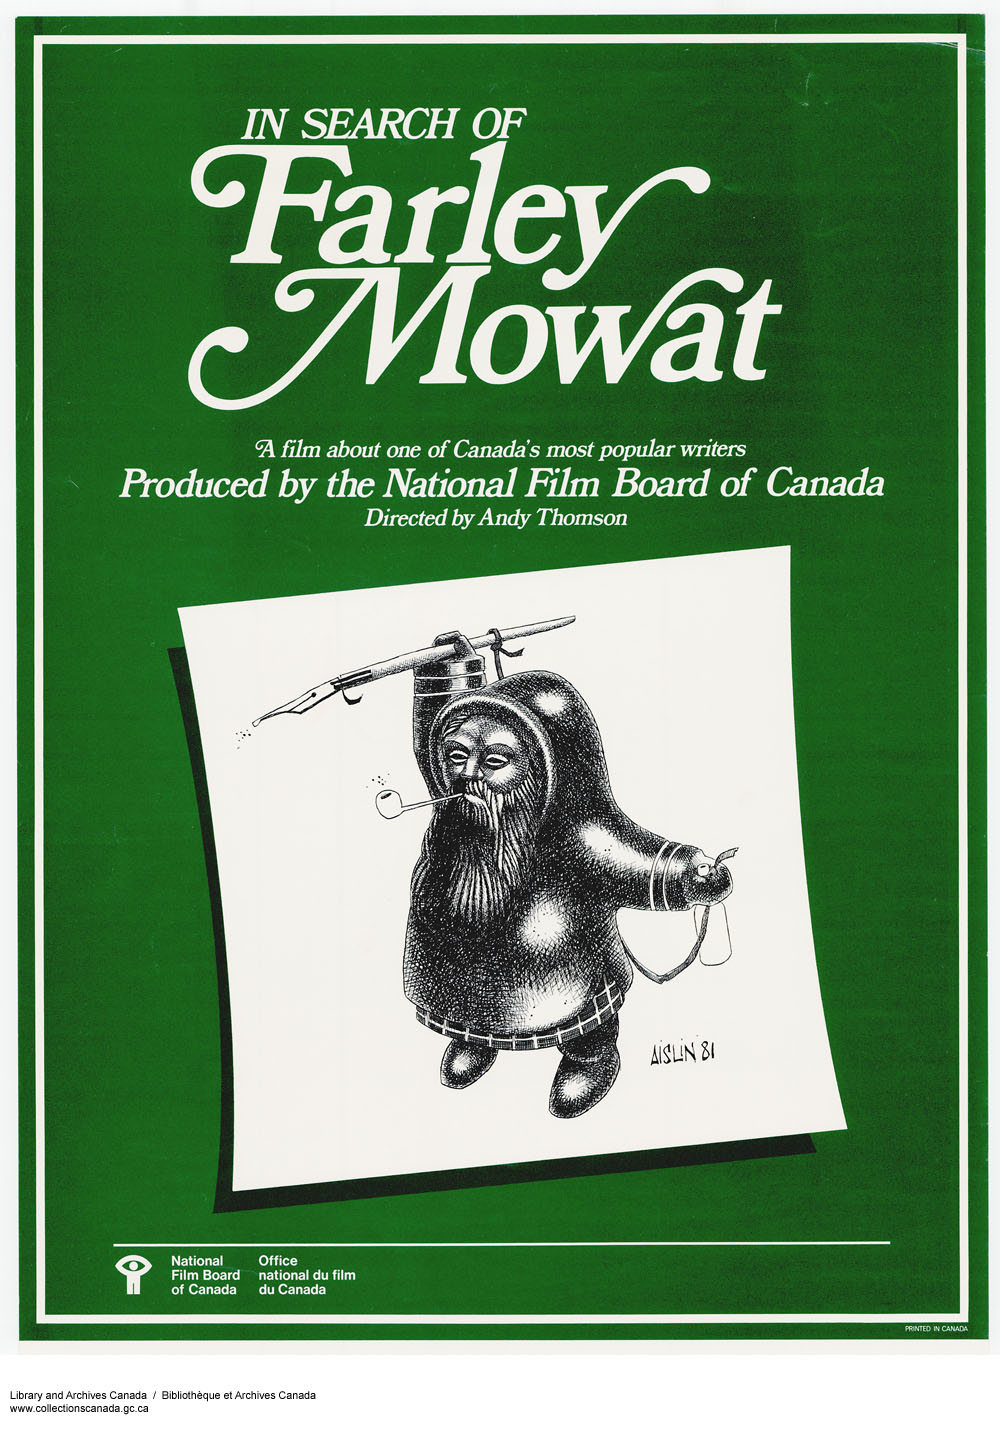 In Search of Farley Mowat . (item 1)